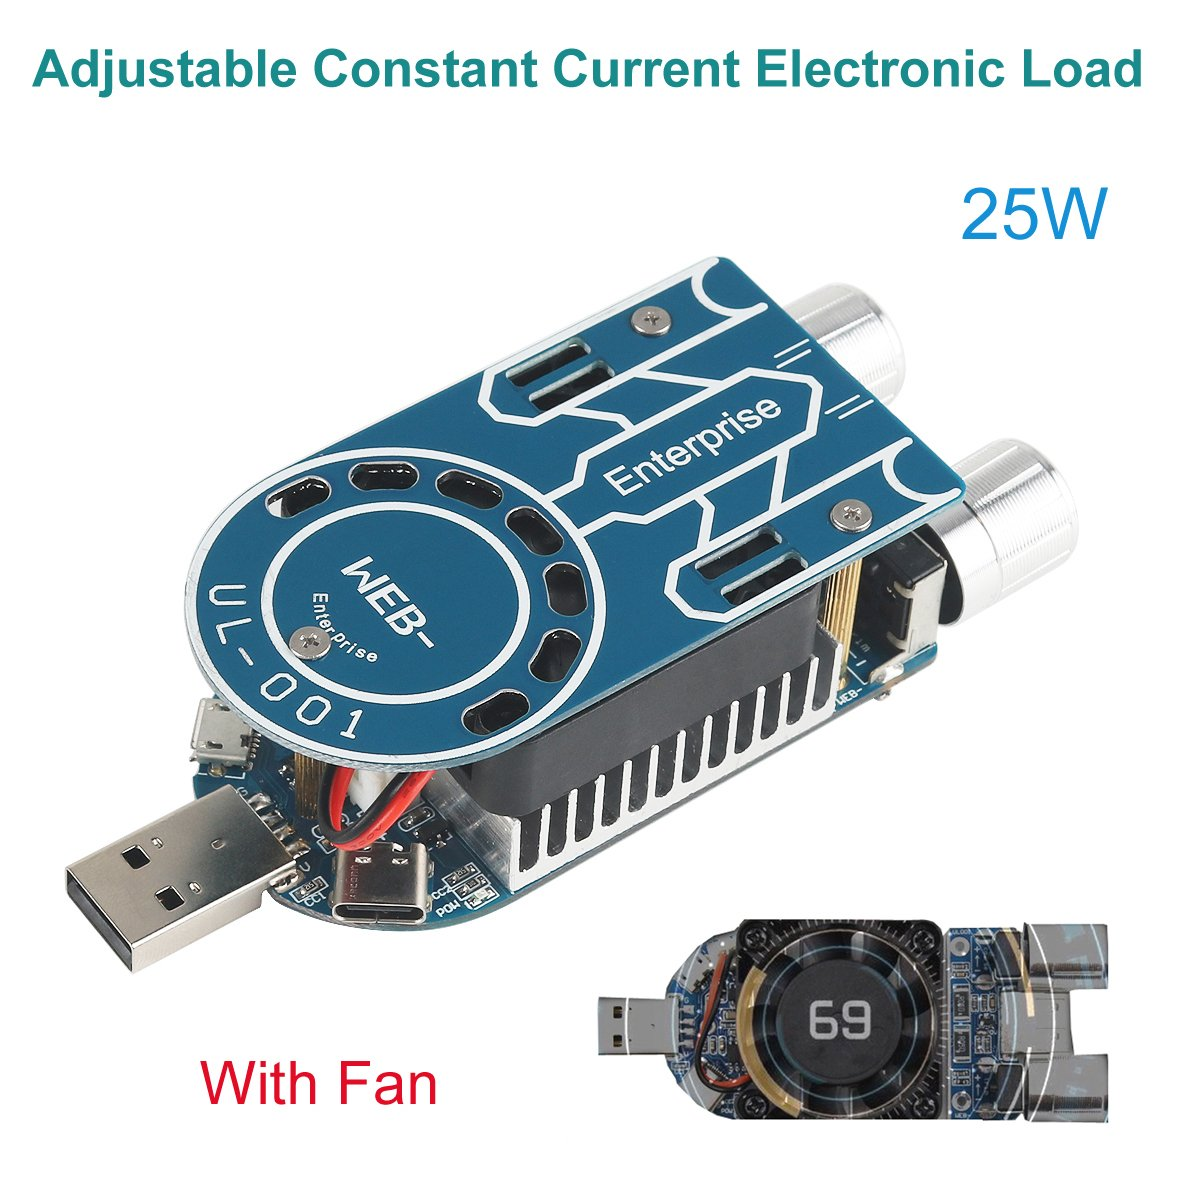 USB Load Tester Resistor 25W Electronic Load Tester Adjustable Constant Current Load Tester USB Resistance Battery Discharge Aging Discharger Tester Line Detector Module With Cooling Fan (25W)